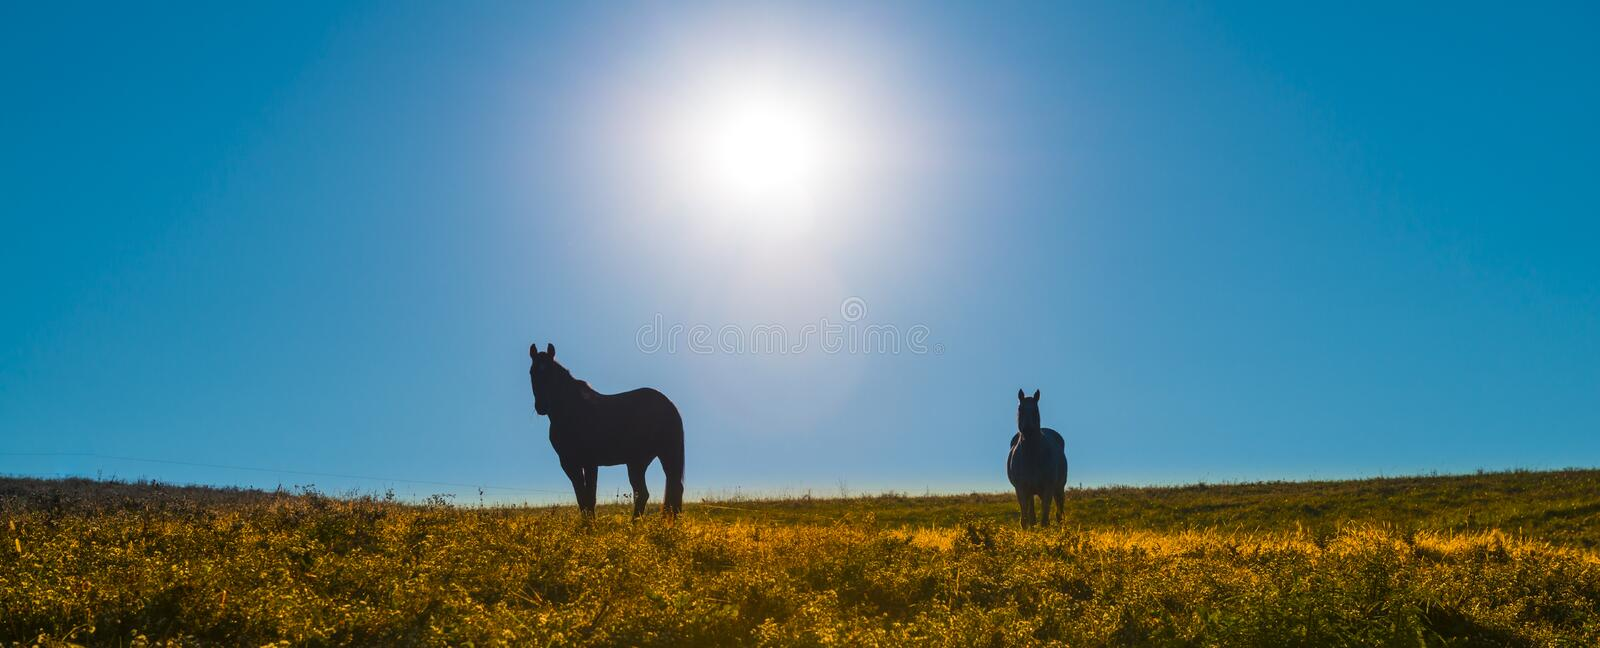 Horses Silhouette Against Sky stock photography